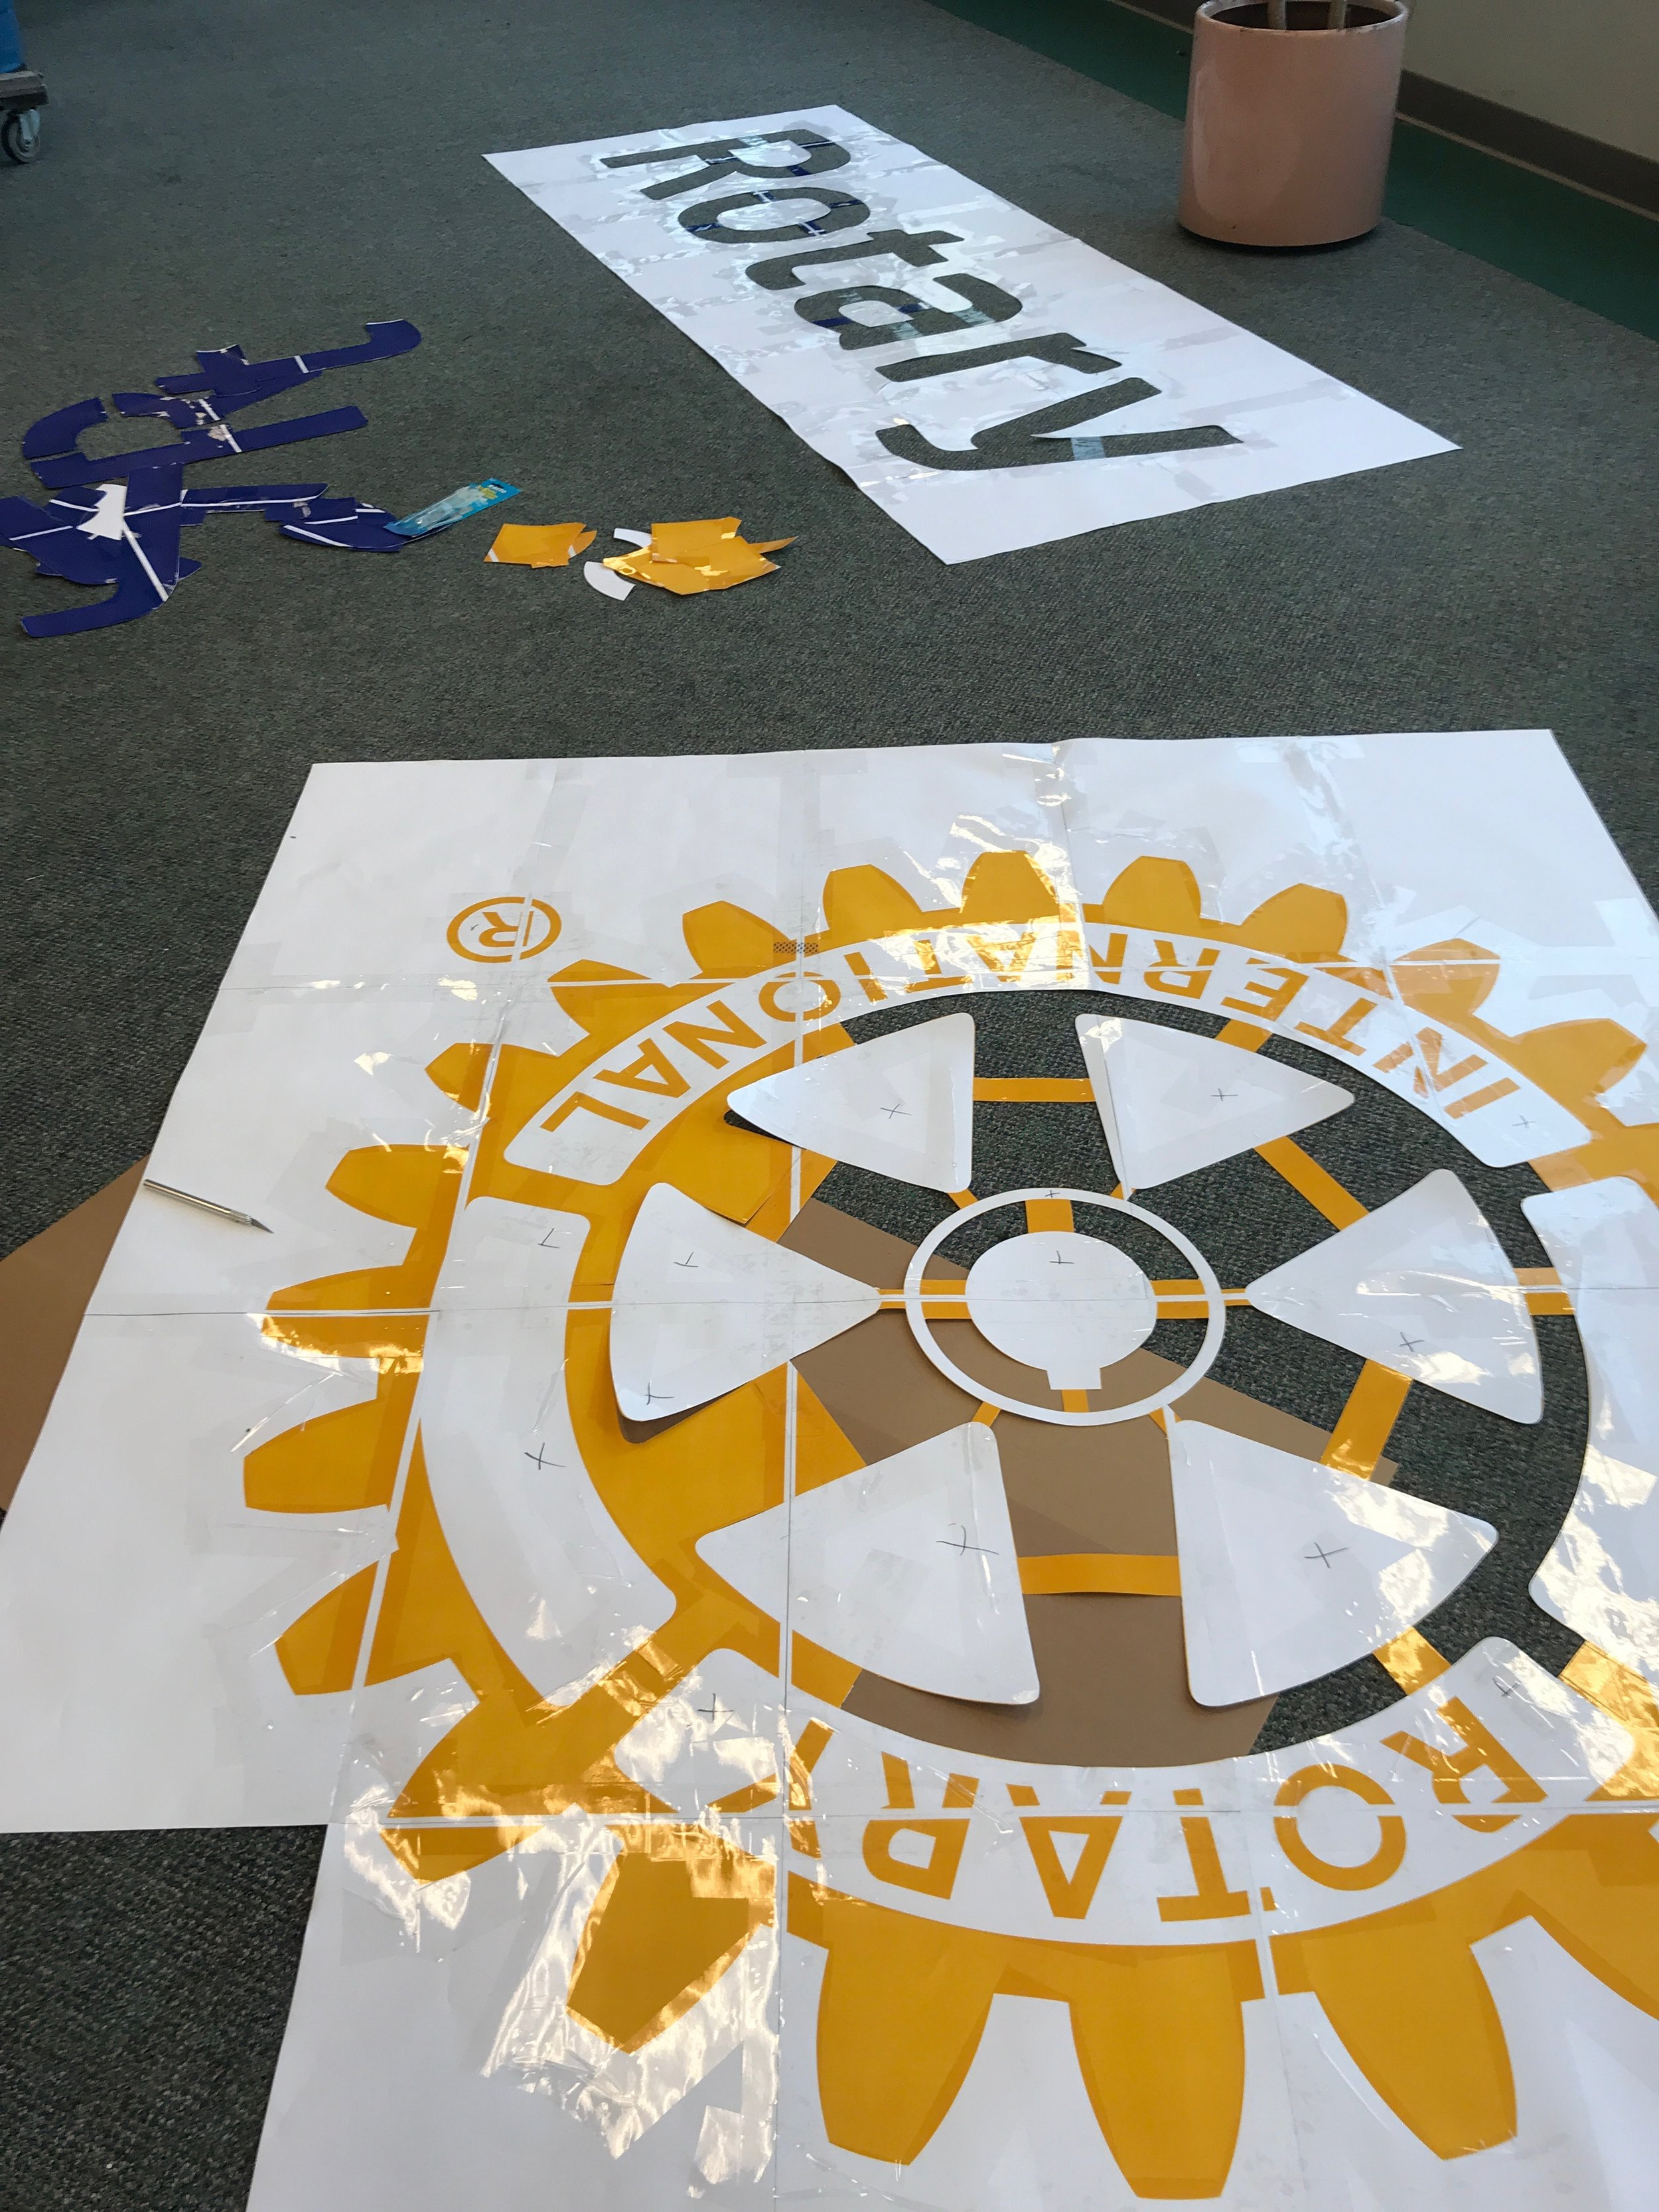 Rotary Club logo stencil, 12' x 5' total. Ten hours of labor to X-acto knife and tape.